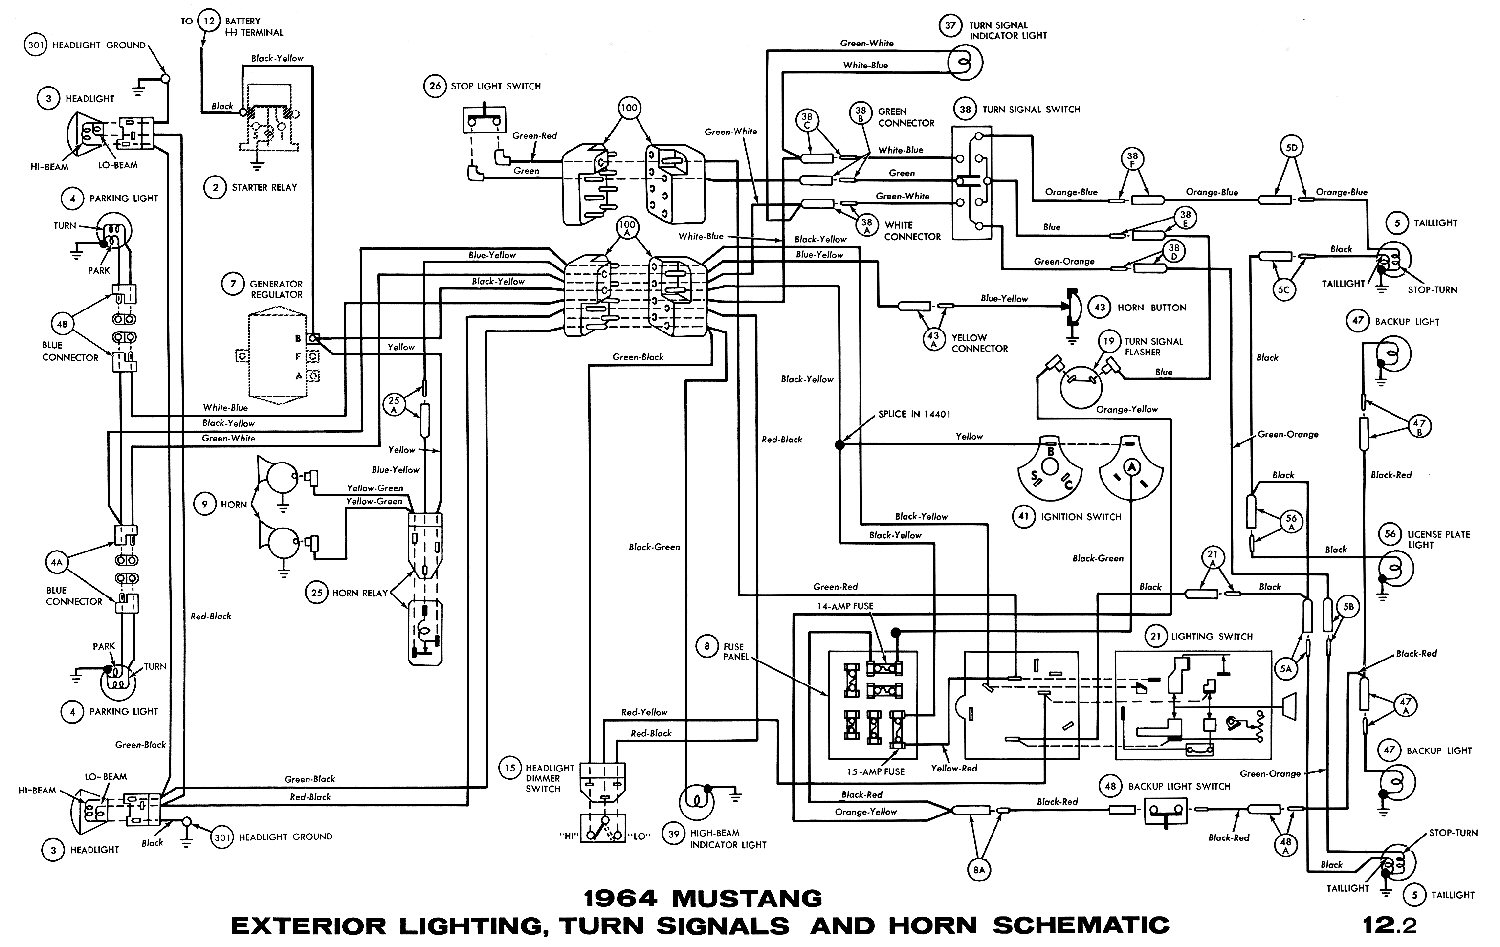 1964i 1964 mustang wiring diagrams average joe restoration 93 mustang turn signal wiring diagram at n-0.co